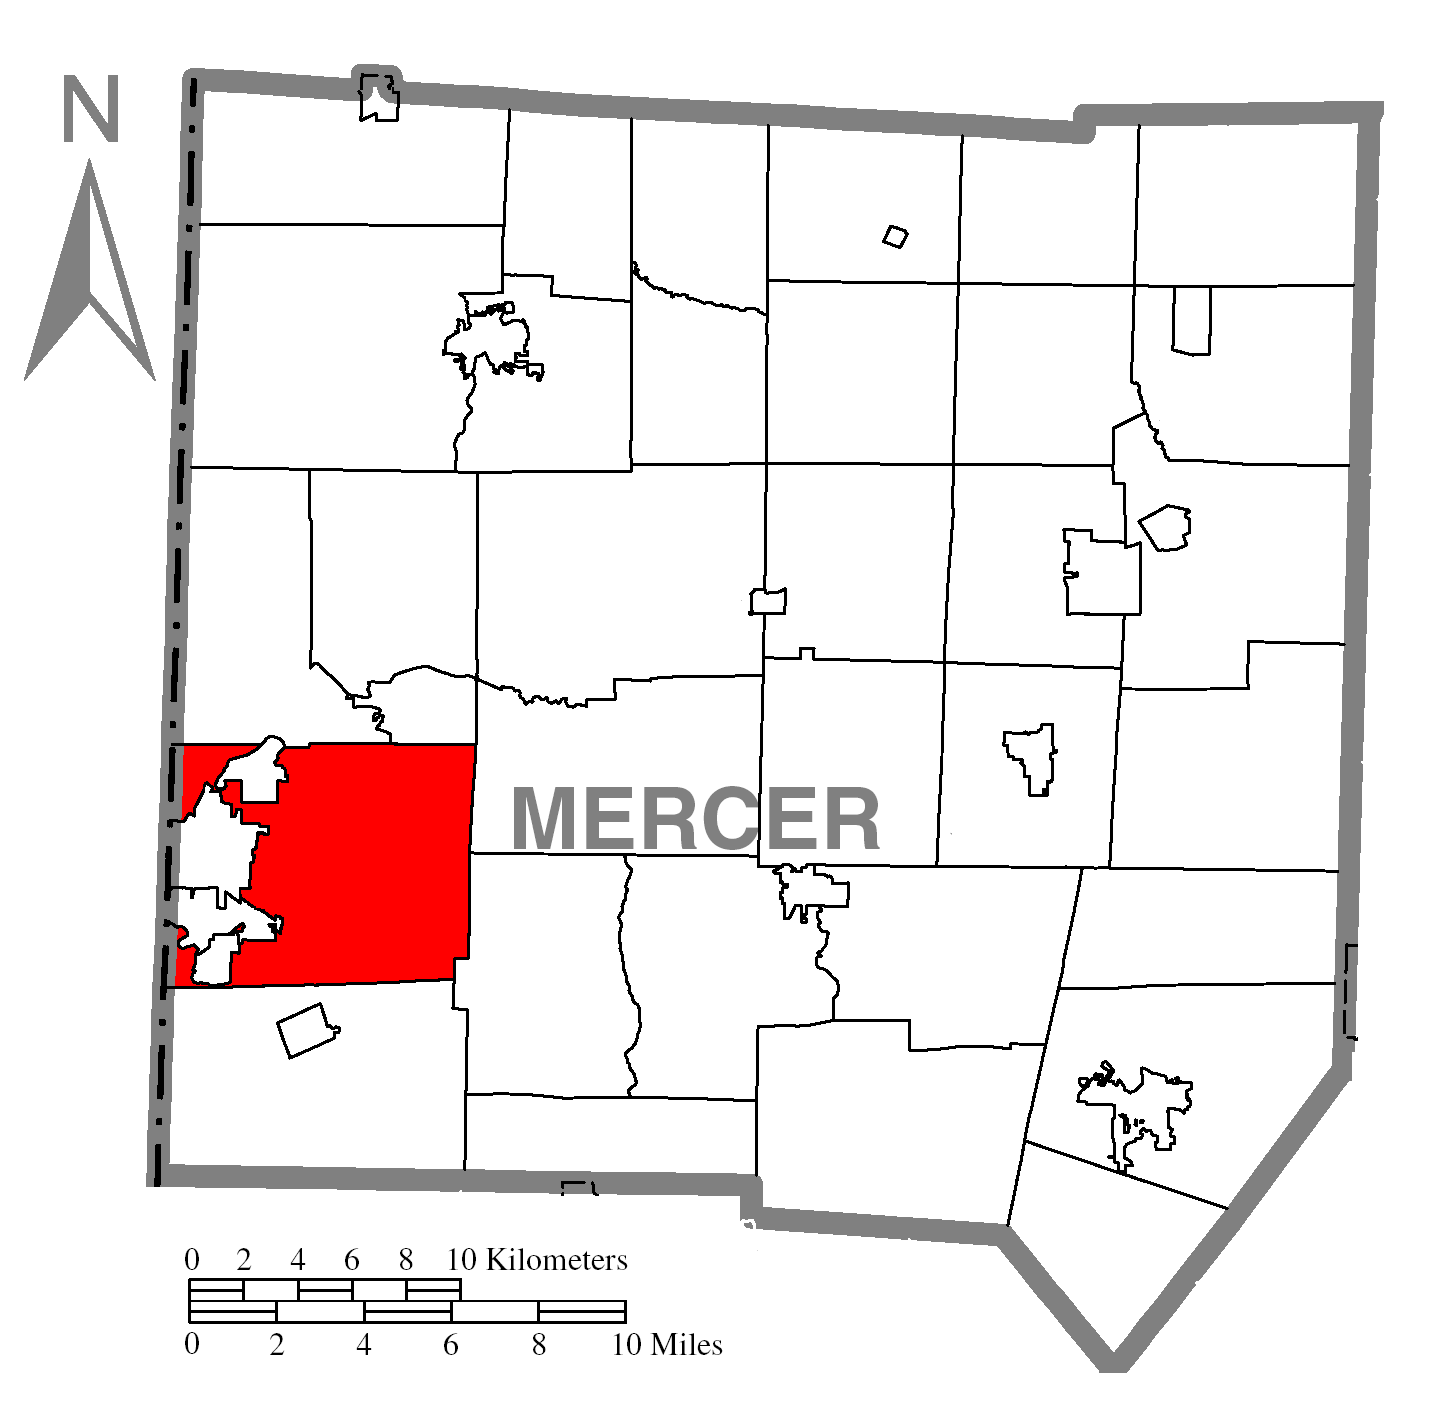 Map Of Hermitagec Mercer Countyc Pennsylvania Highlighted